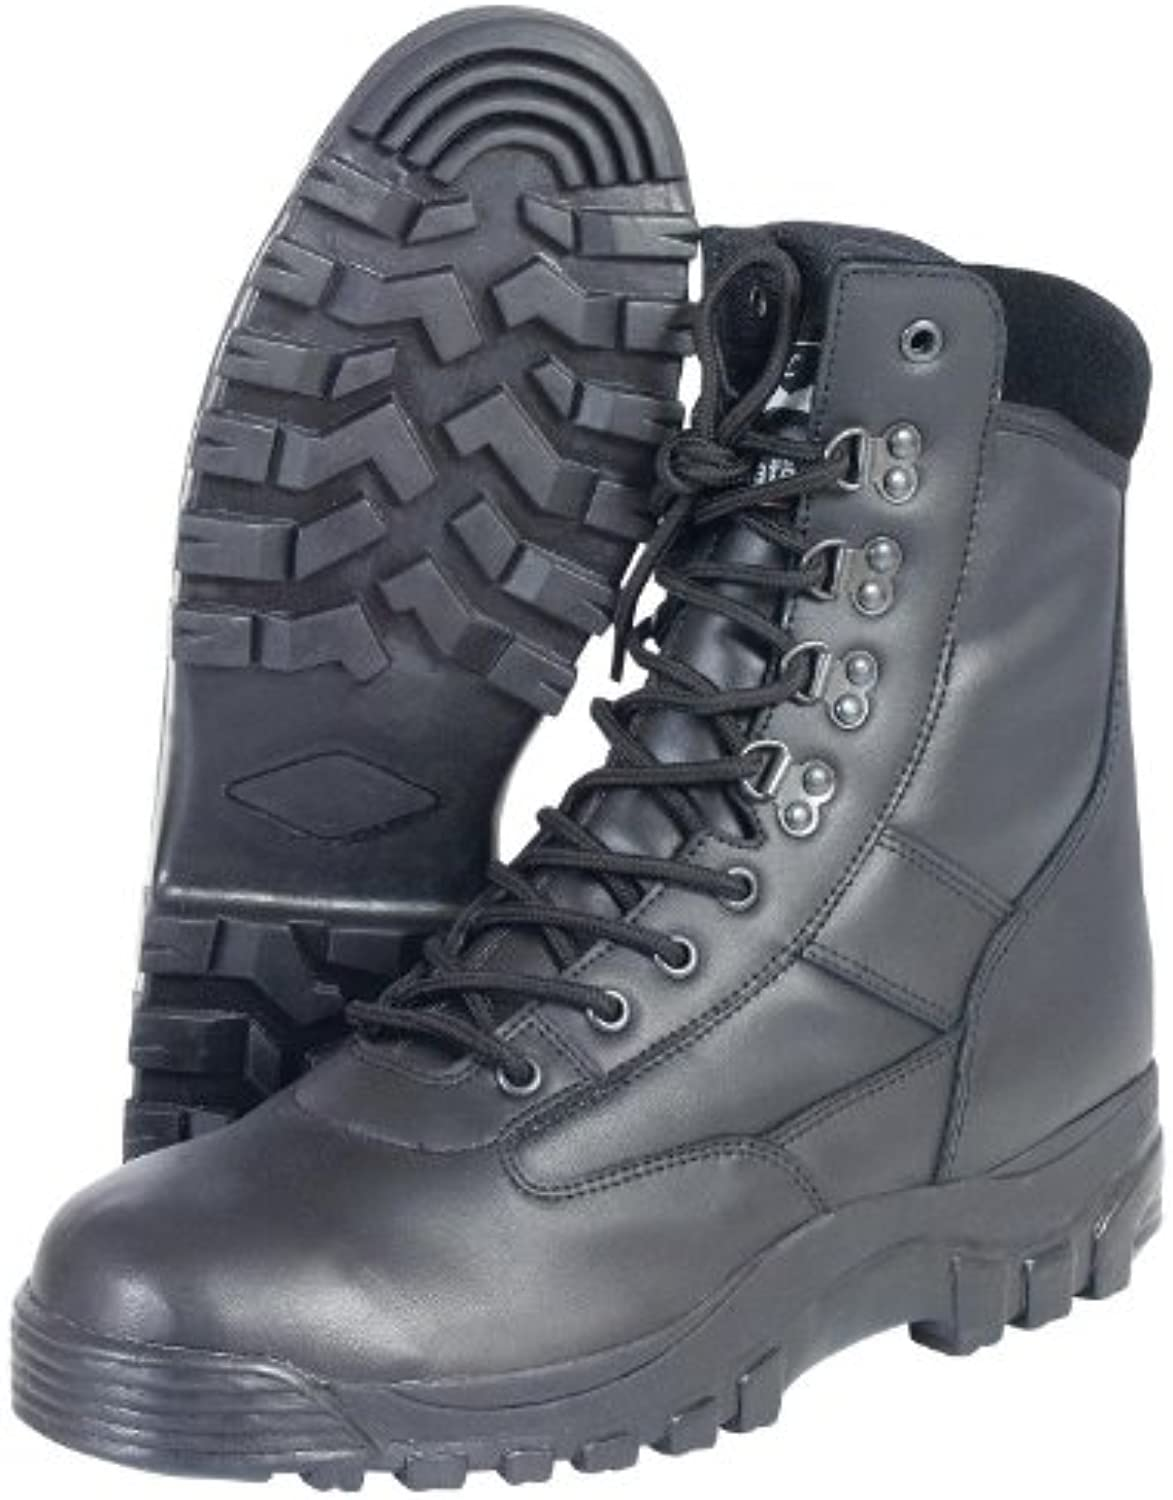 Mil-com all-leather PATROL stivali - Nero, 13 13 13 | Le vendite online